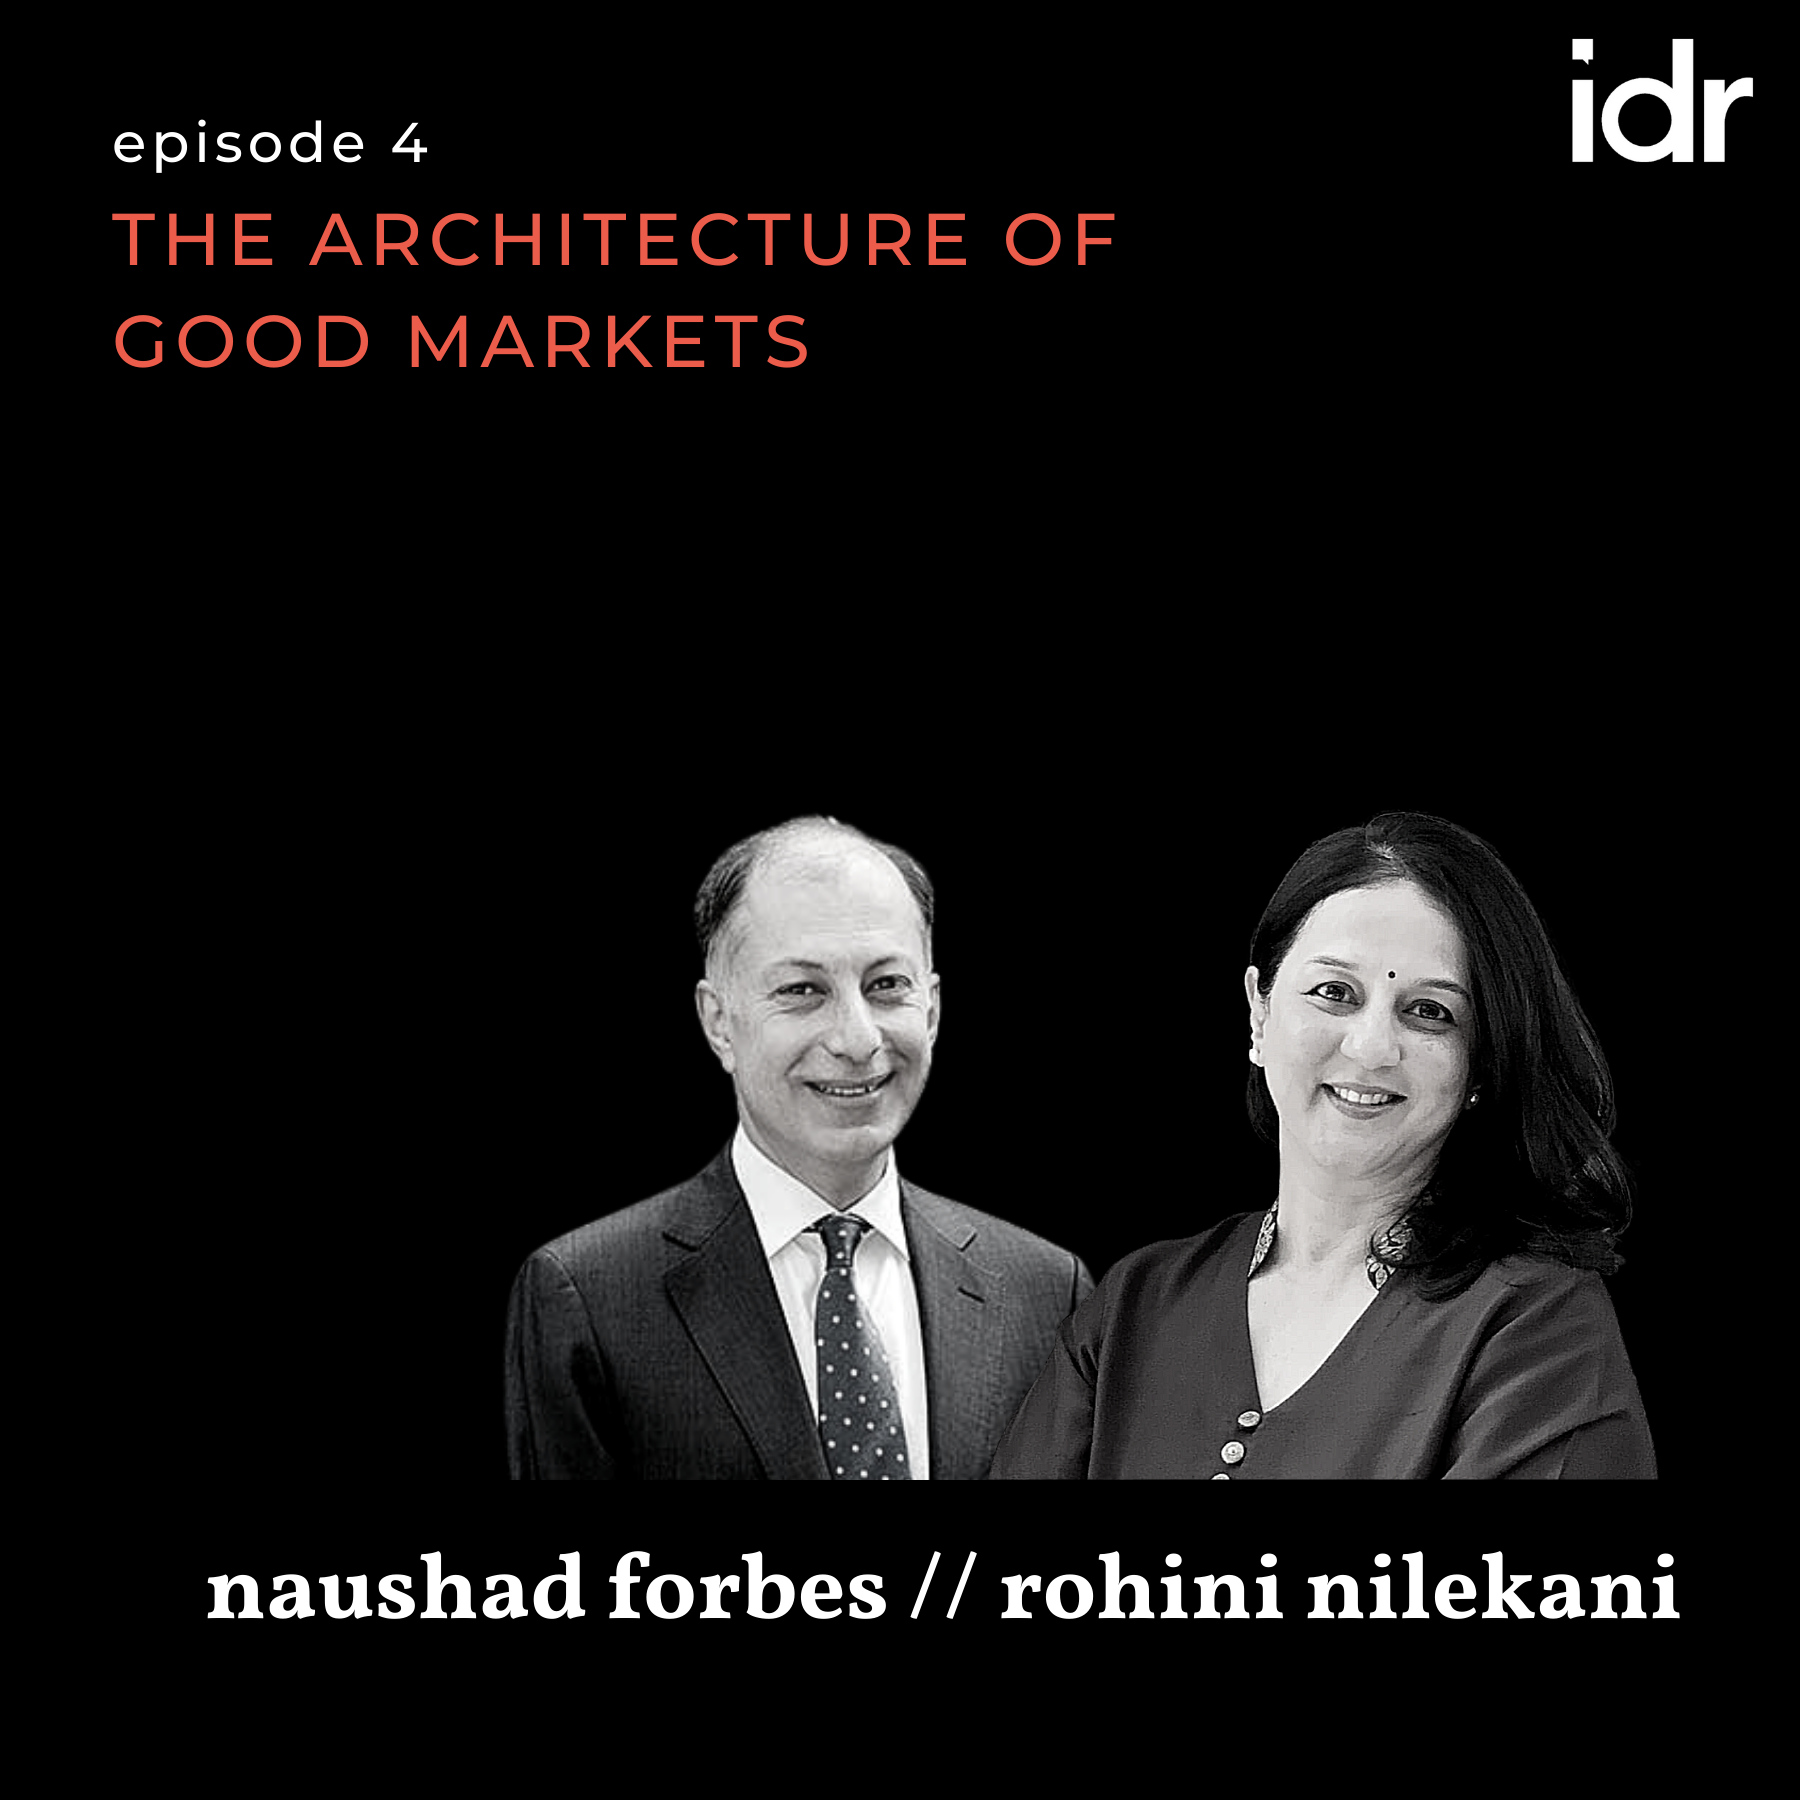 The architecture of good markets